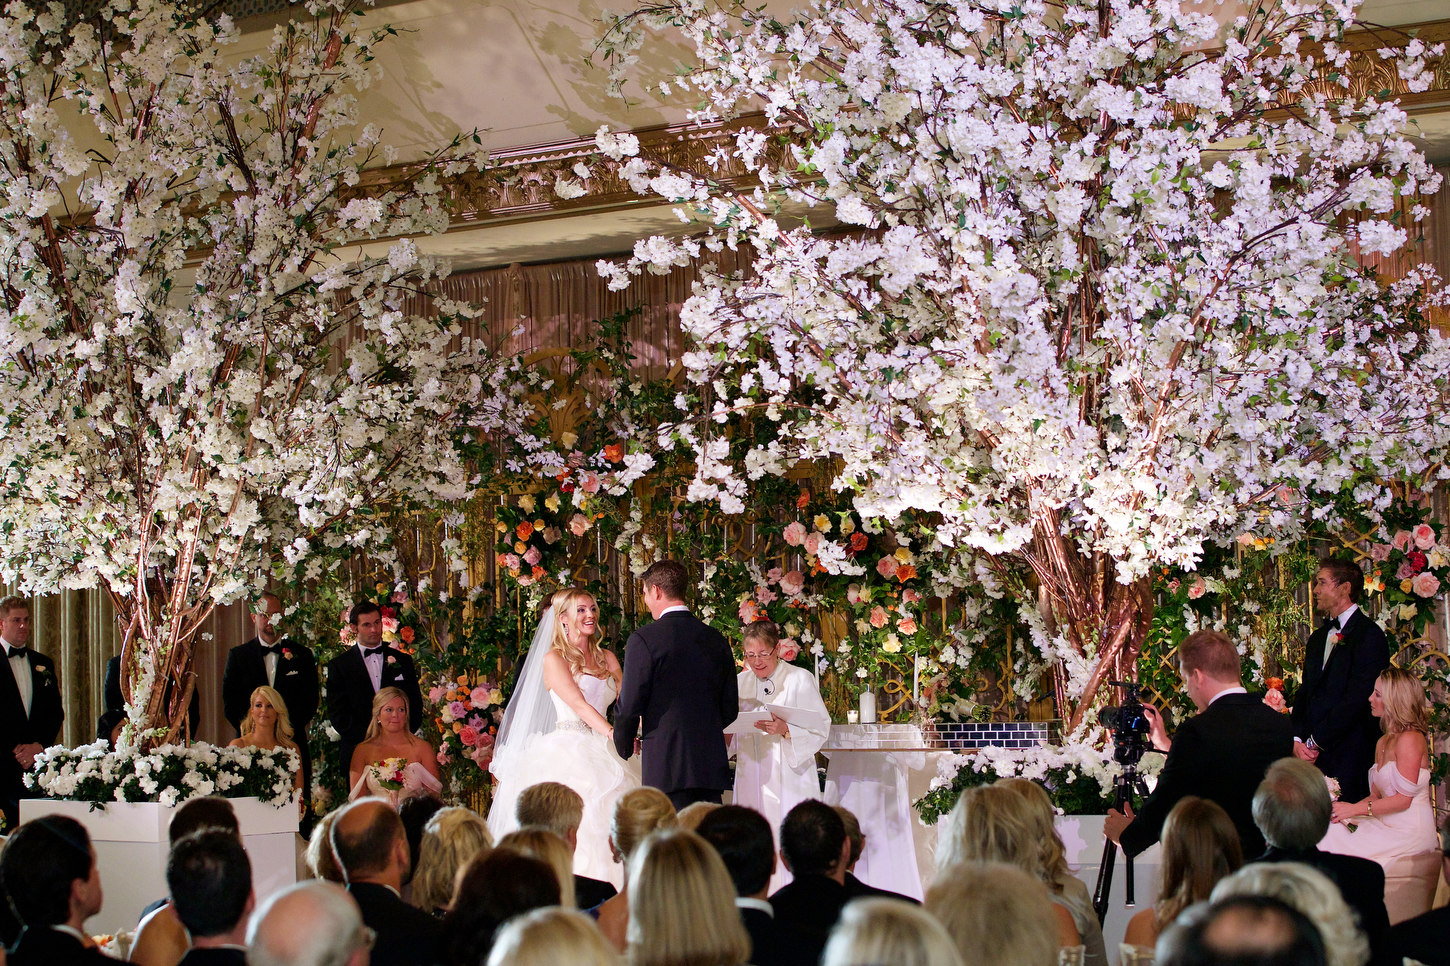 Luxurious Garden Wedding | Ritz-Carlton | Chicago - Bob & Dawn Davis Photography & Design